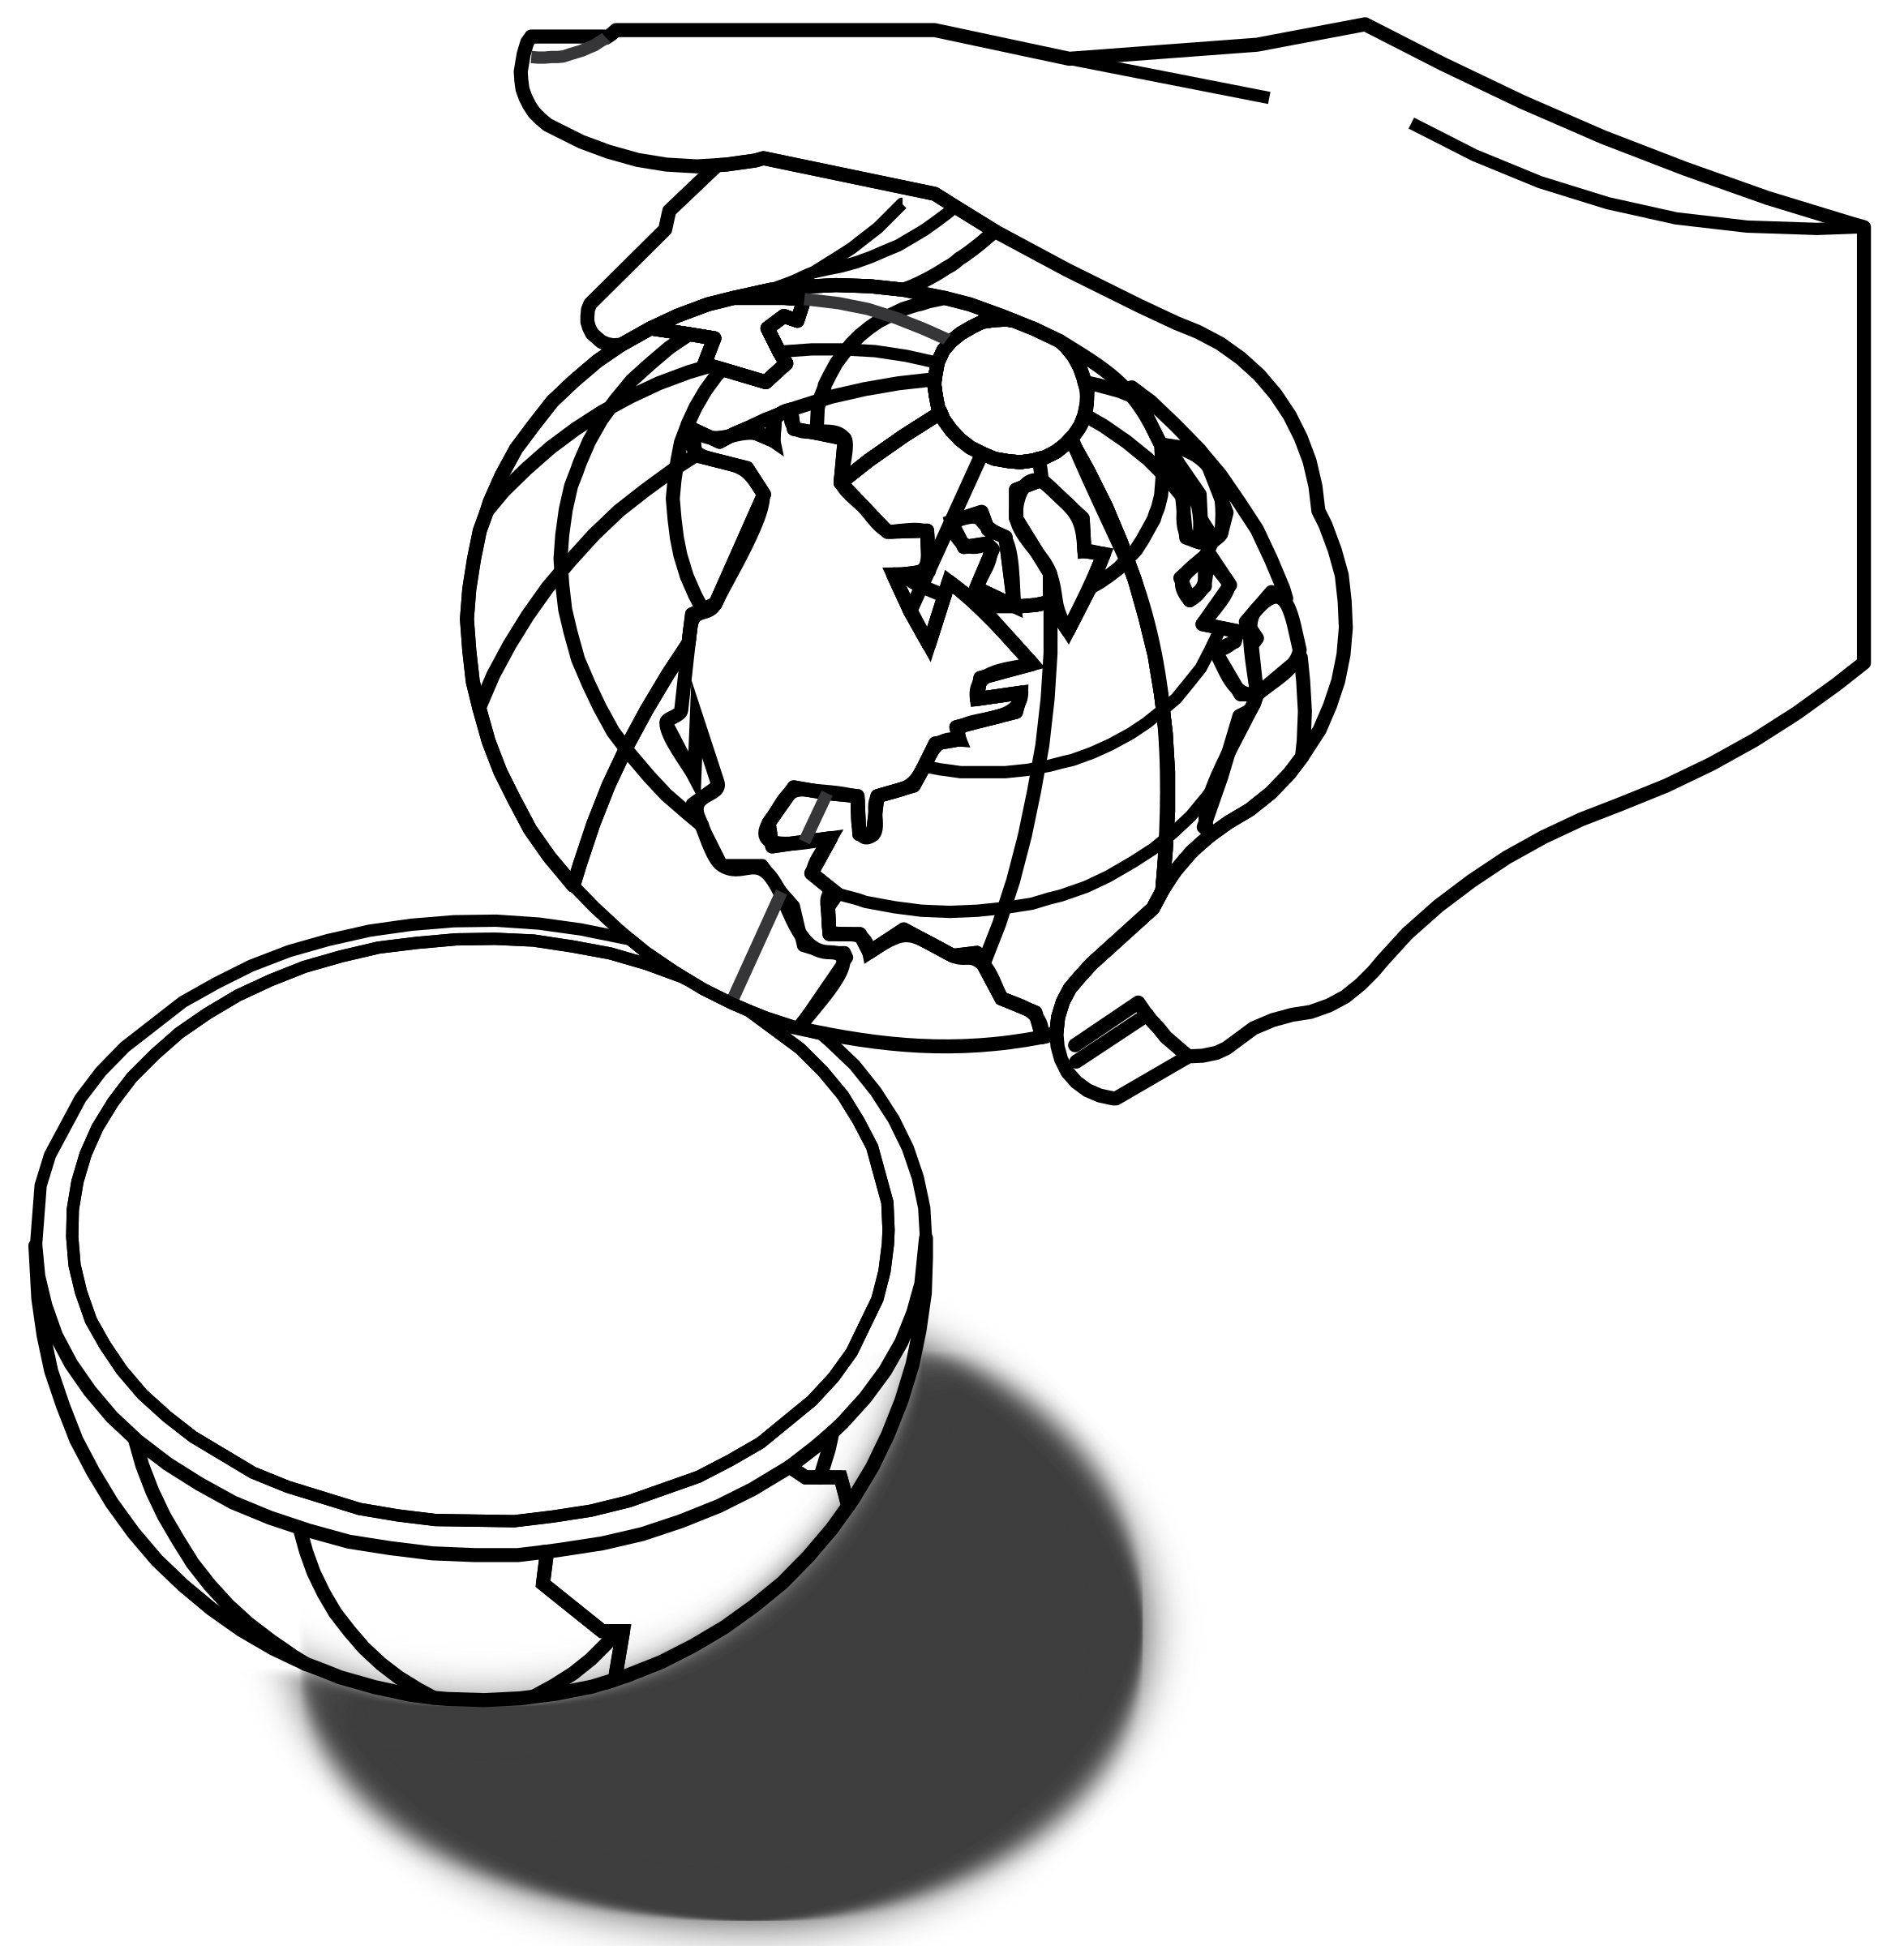 Divided big image png. Globe clipart lineart